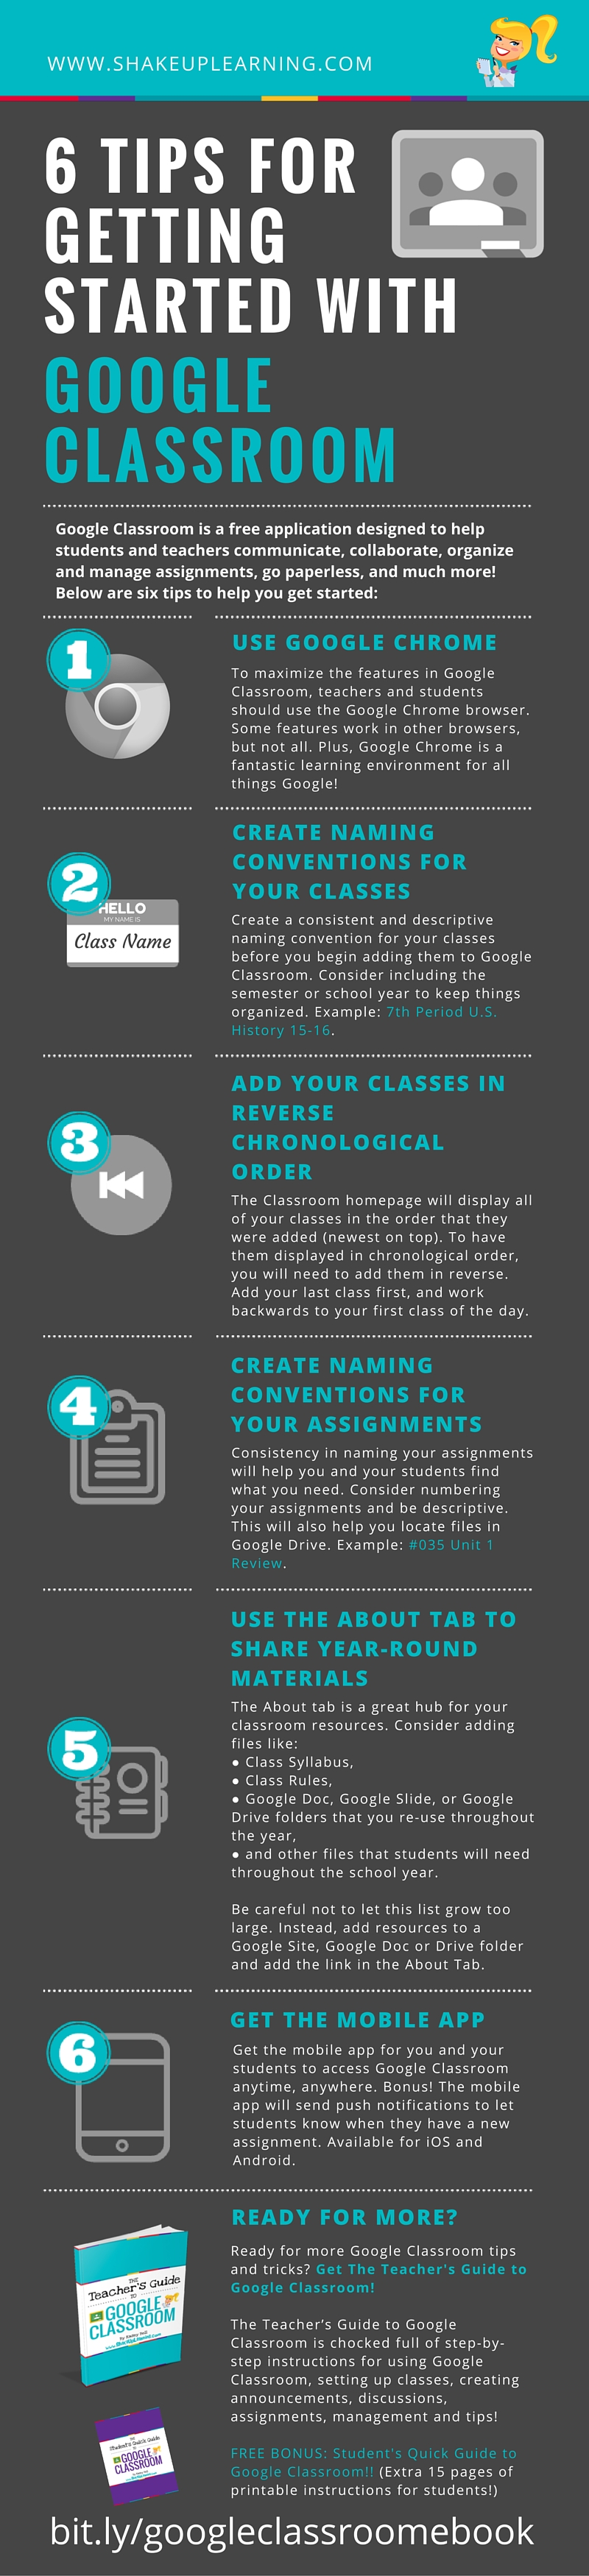 6-Tips-for-getting-started-with-google-classroom-g-.jpg